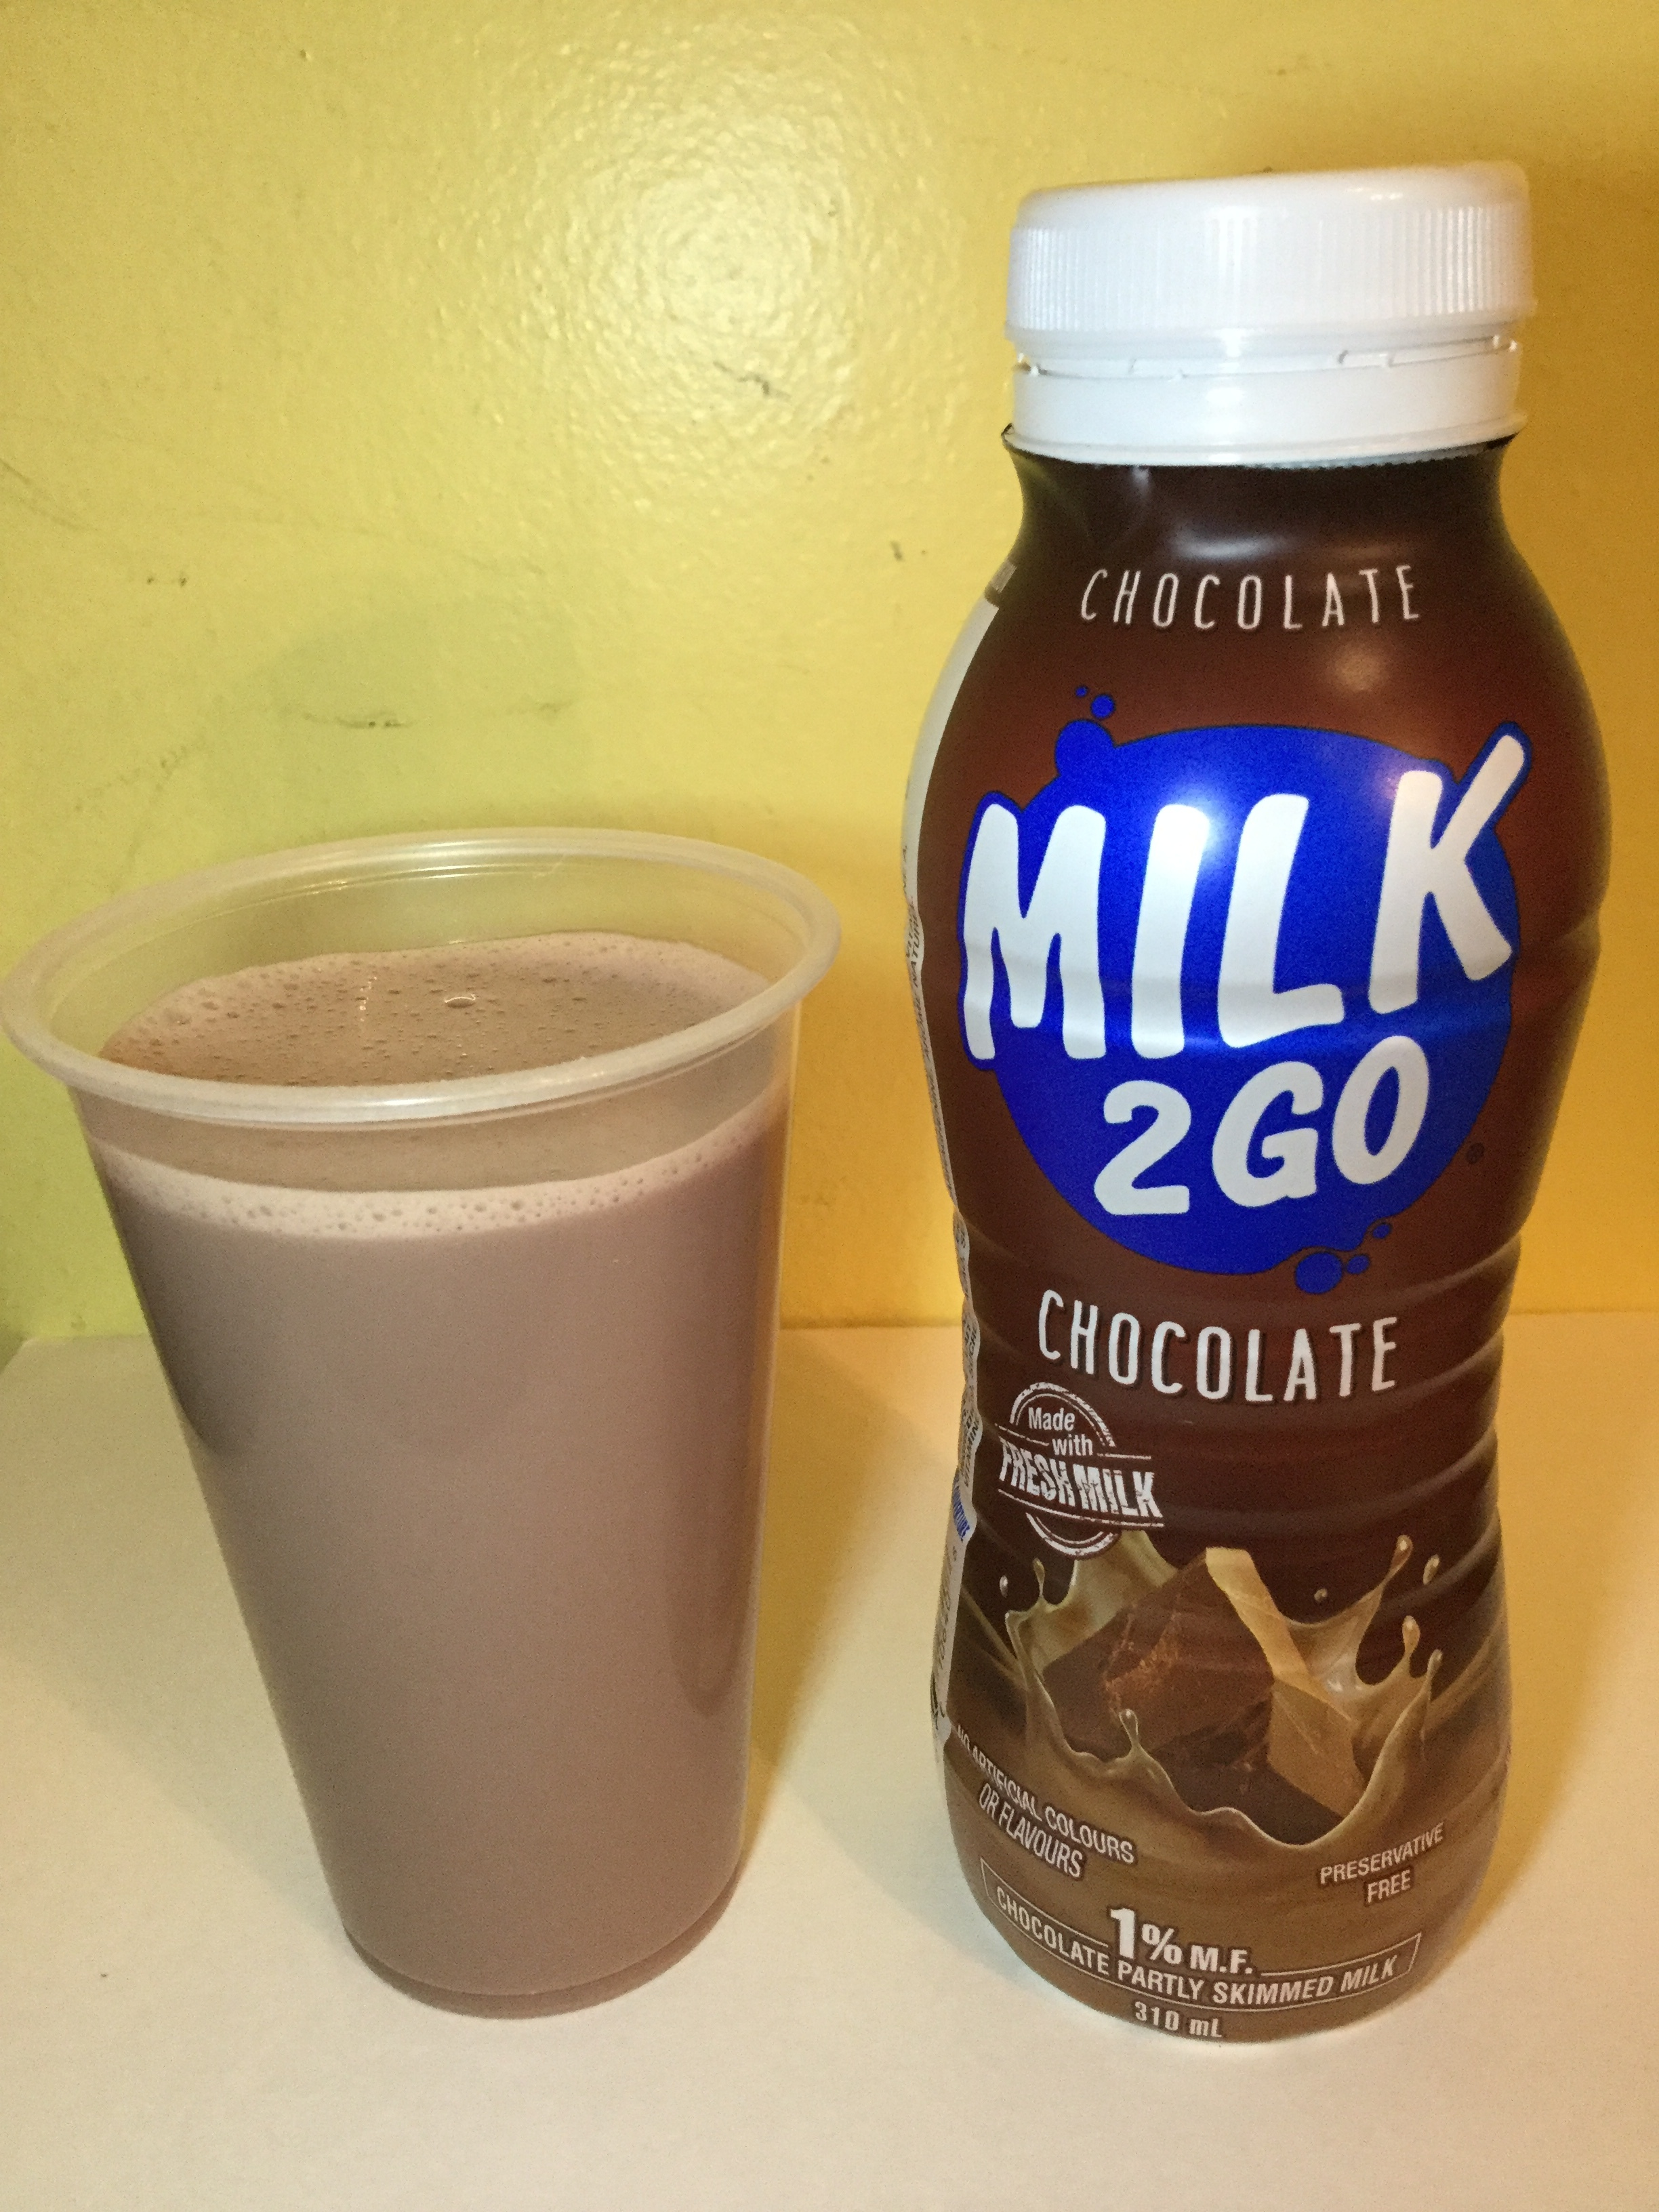 Milk 2 Go Chocolate Milk Cup